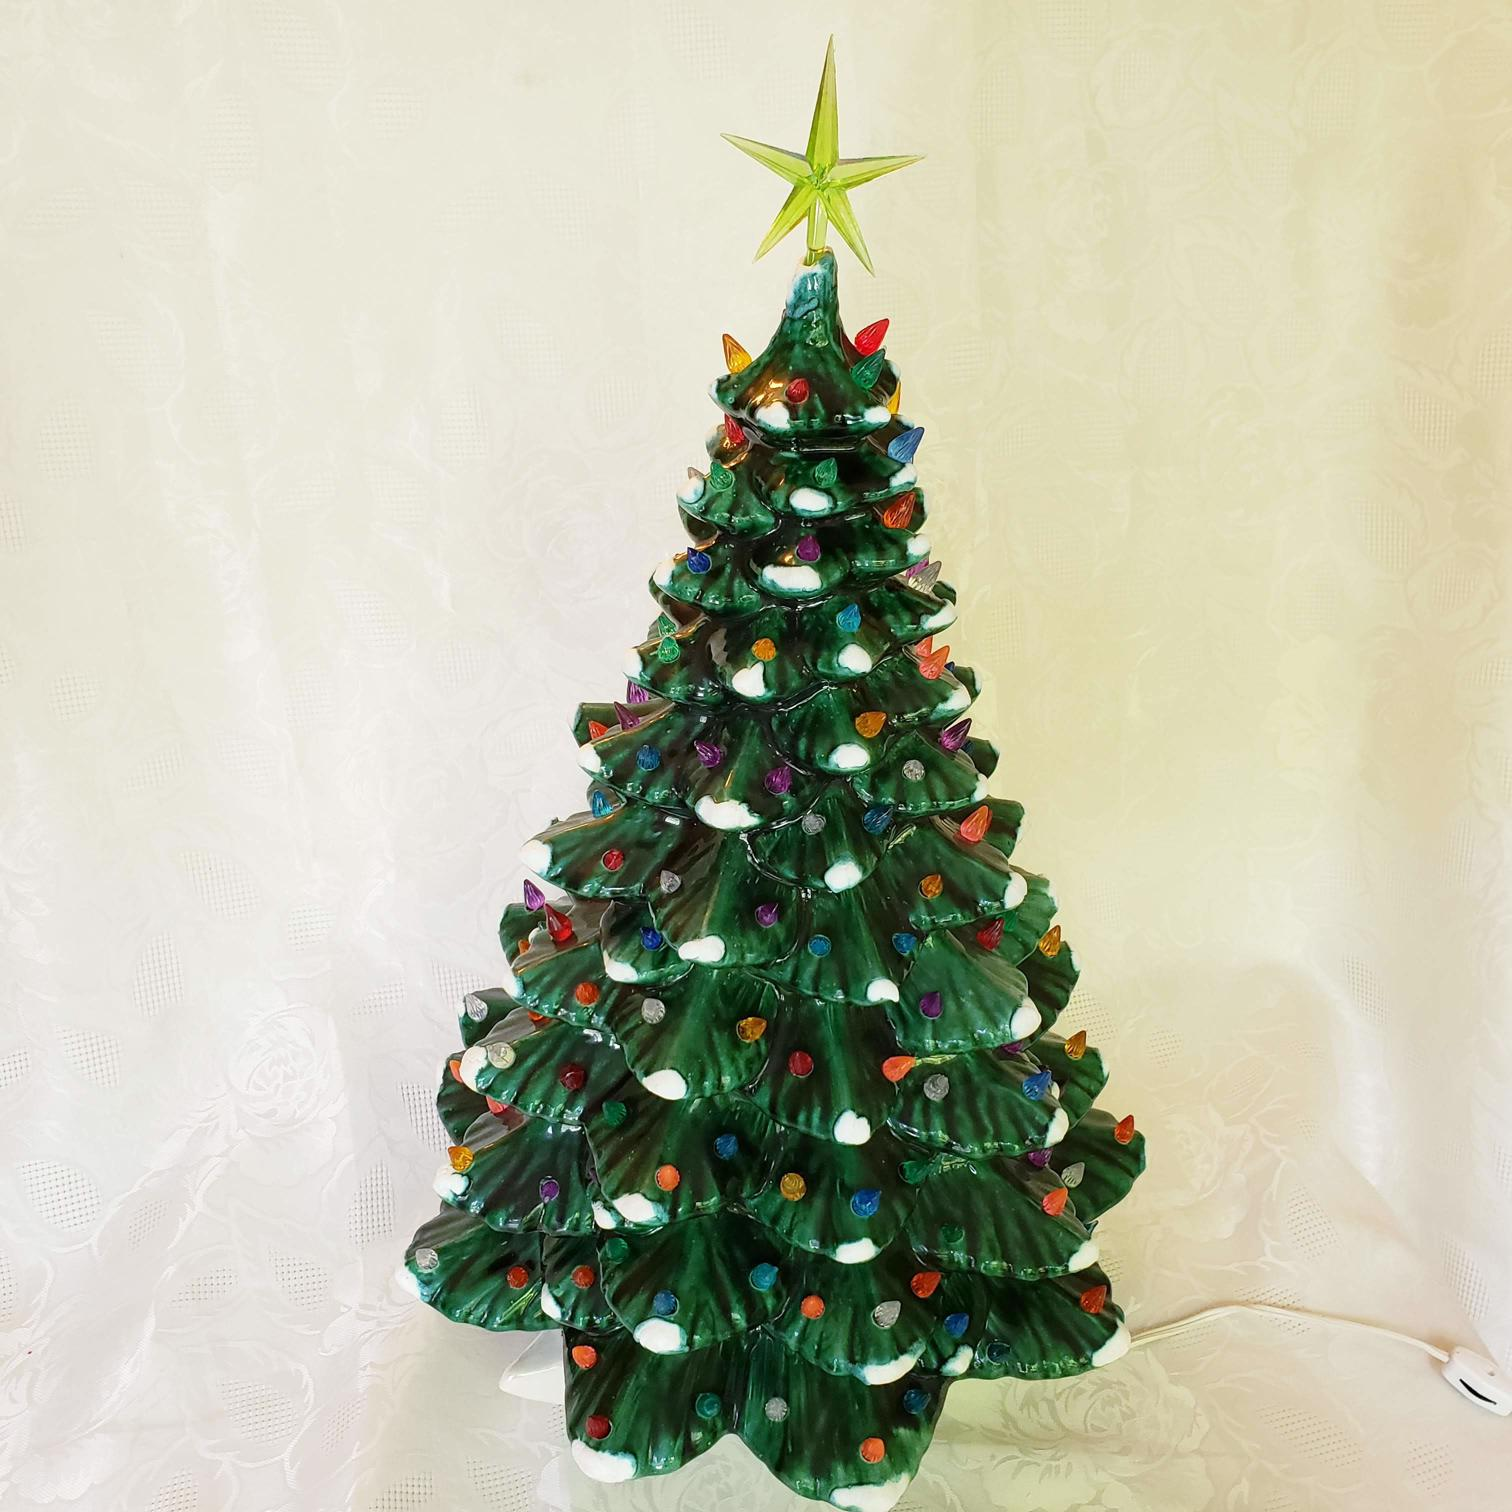 Green And White Christmas Tree: Vintage Large Ceramic Green Flocked Light-up Christmas